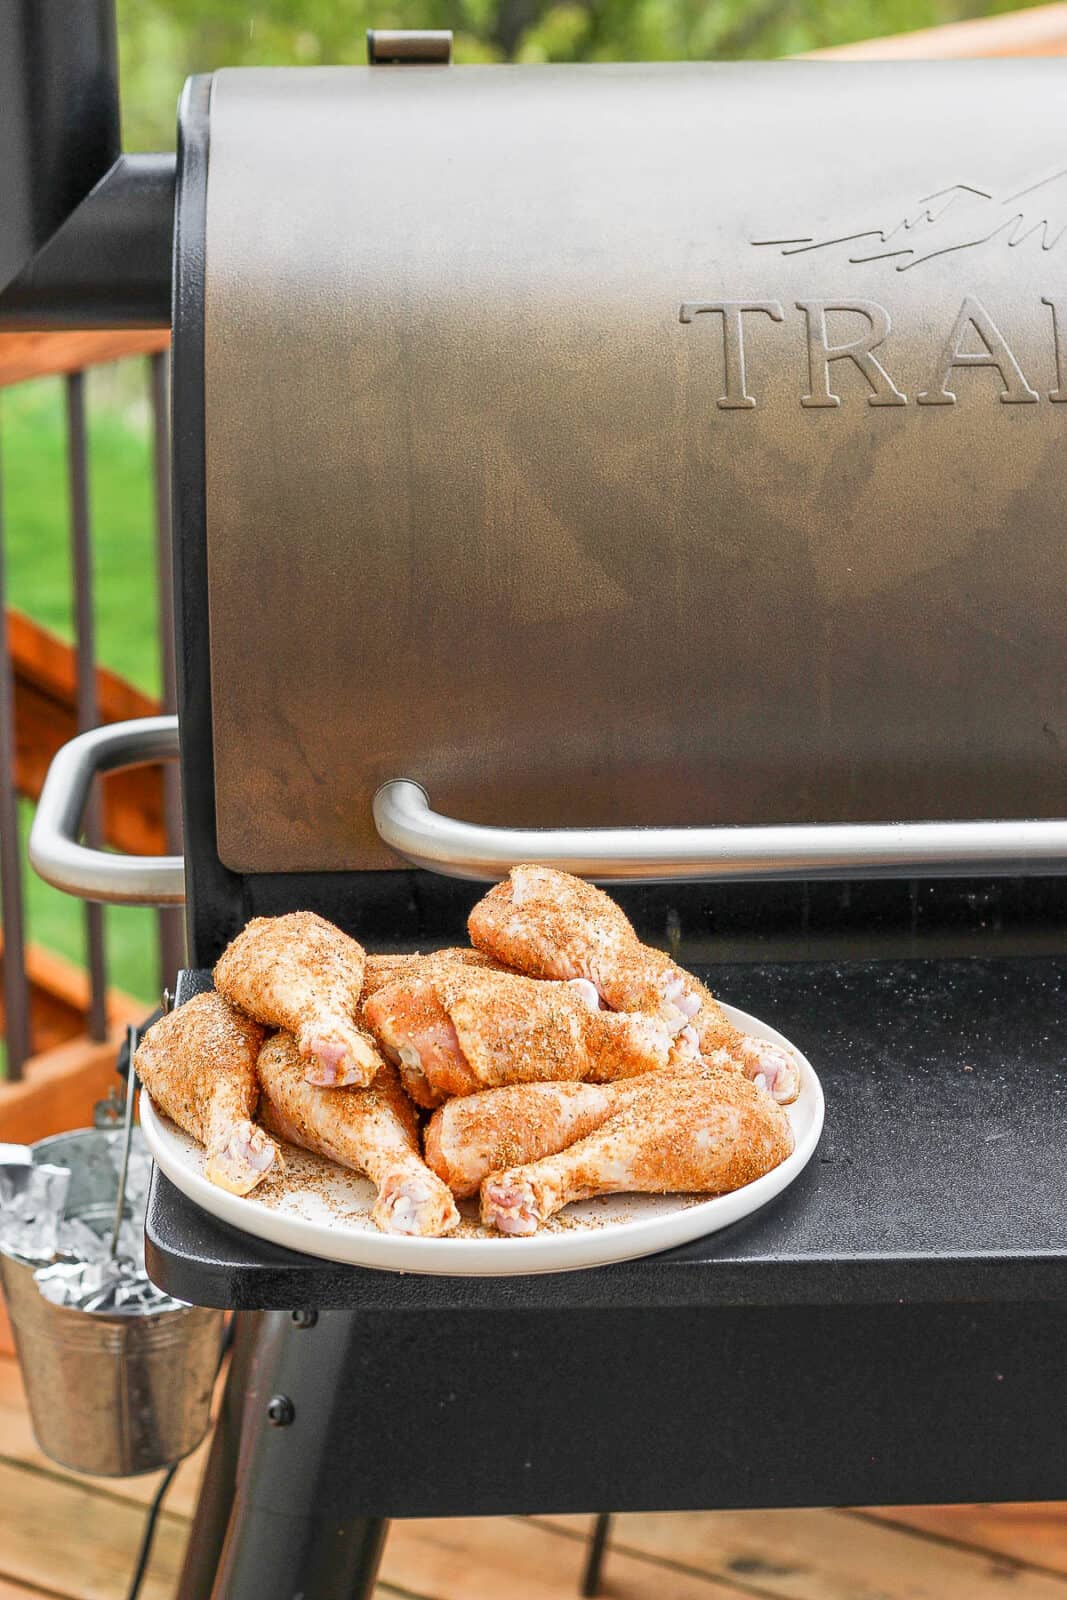 Chicken legs on a plate sitting in front of a smoker.